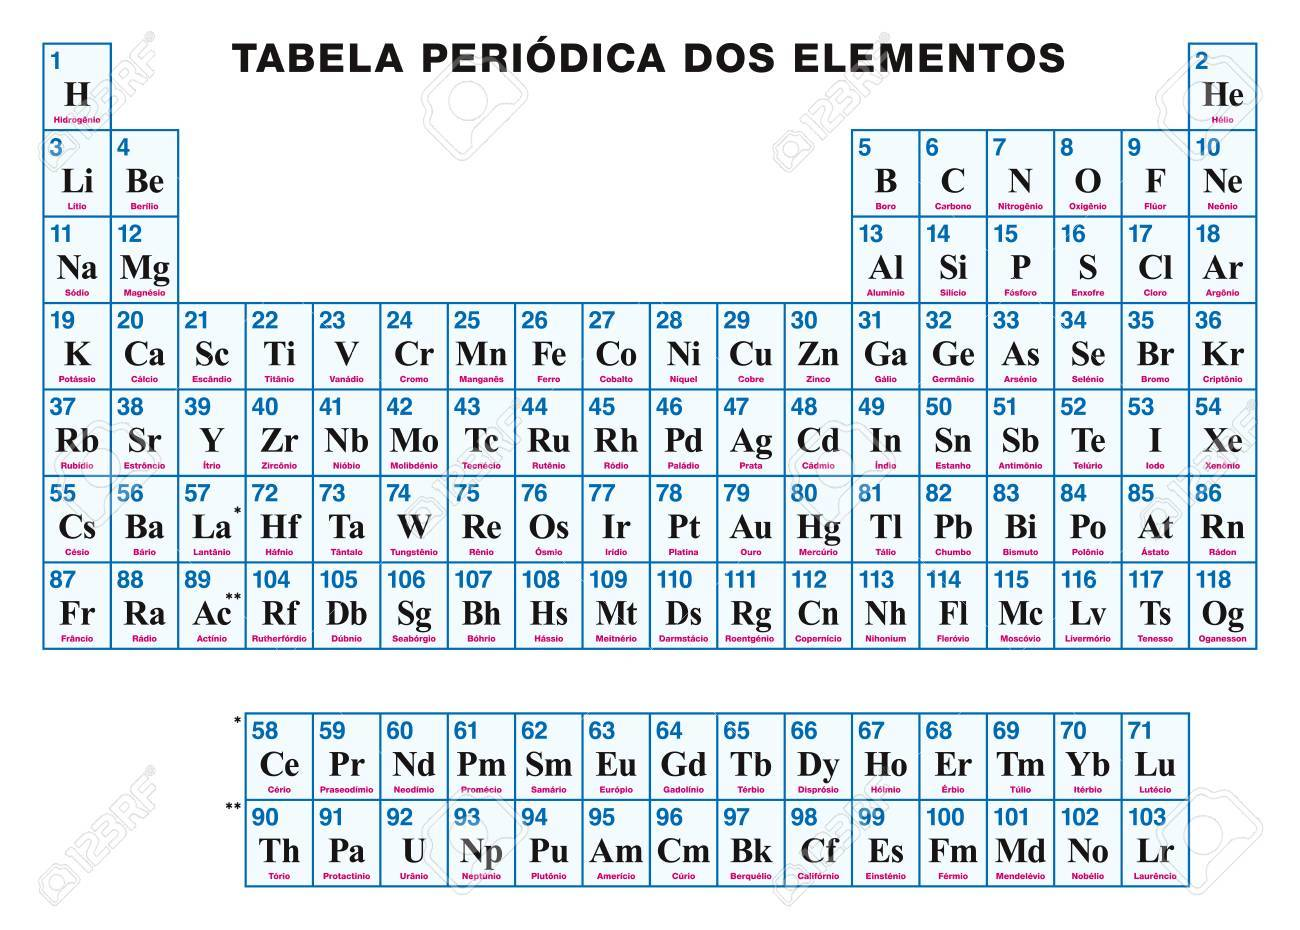 Periodic table of the elements portuguese tabular arrangement periodic table of the elements portuguese tabular arrangement of the chemical elements with atomic buycottarizona